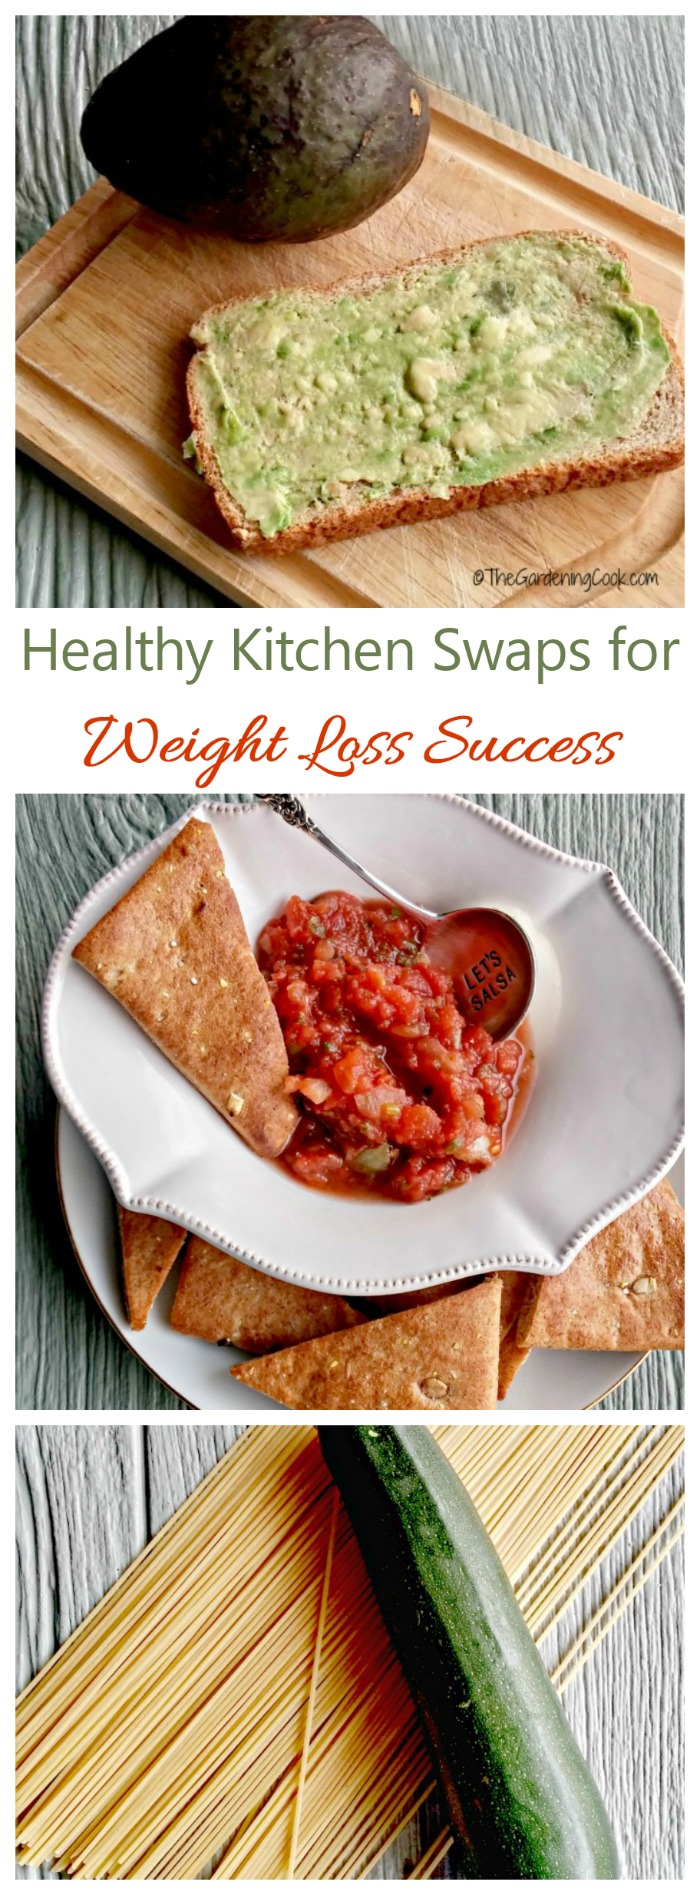 Healthy Kitchen Swaps for long term weight loss success #foodswaps #losingweight